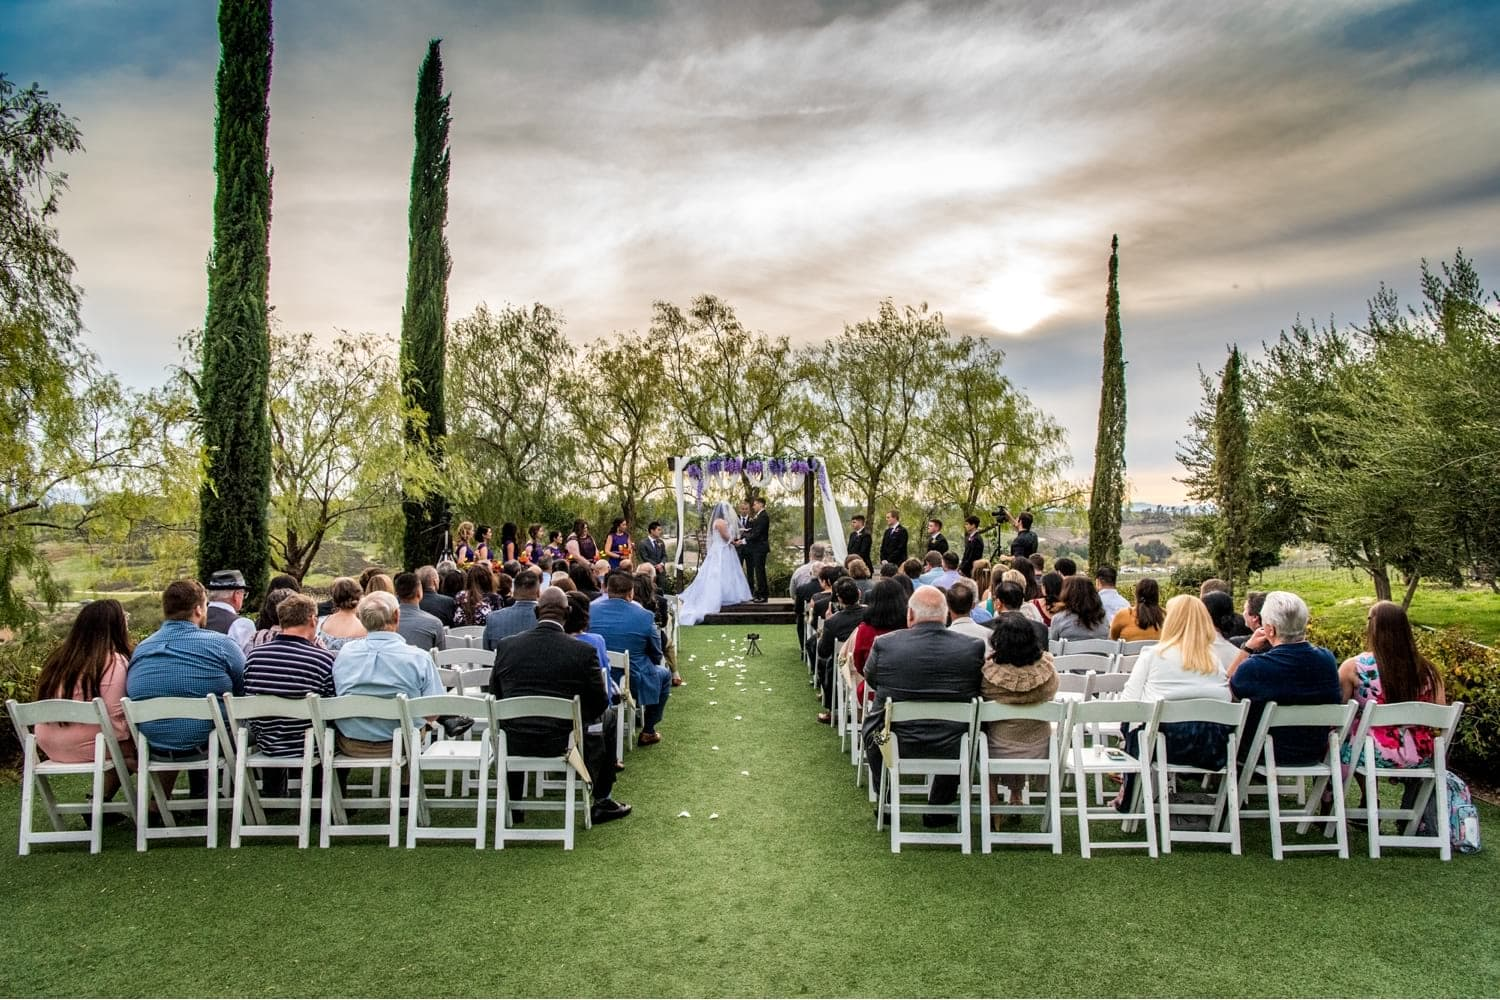 Wedding ceremony with guests at Falkner Winery.